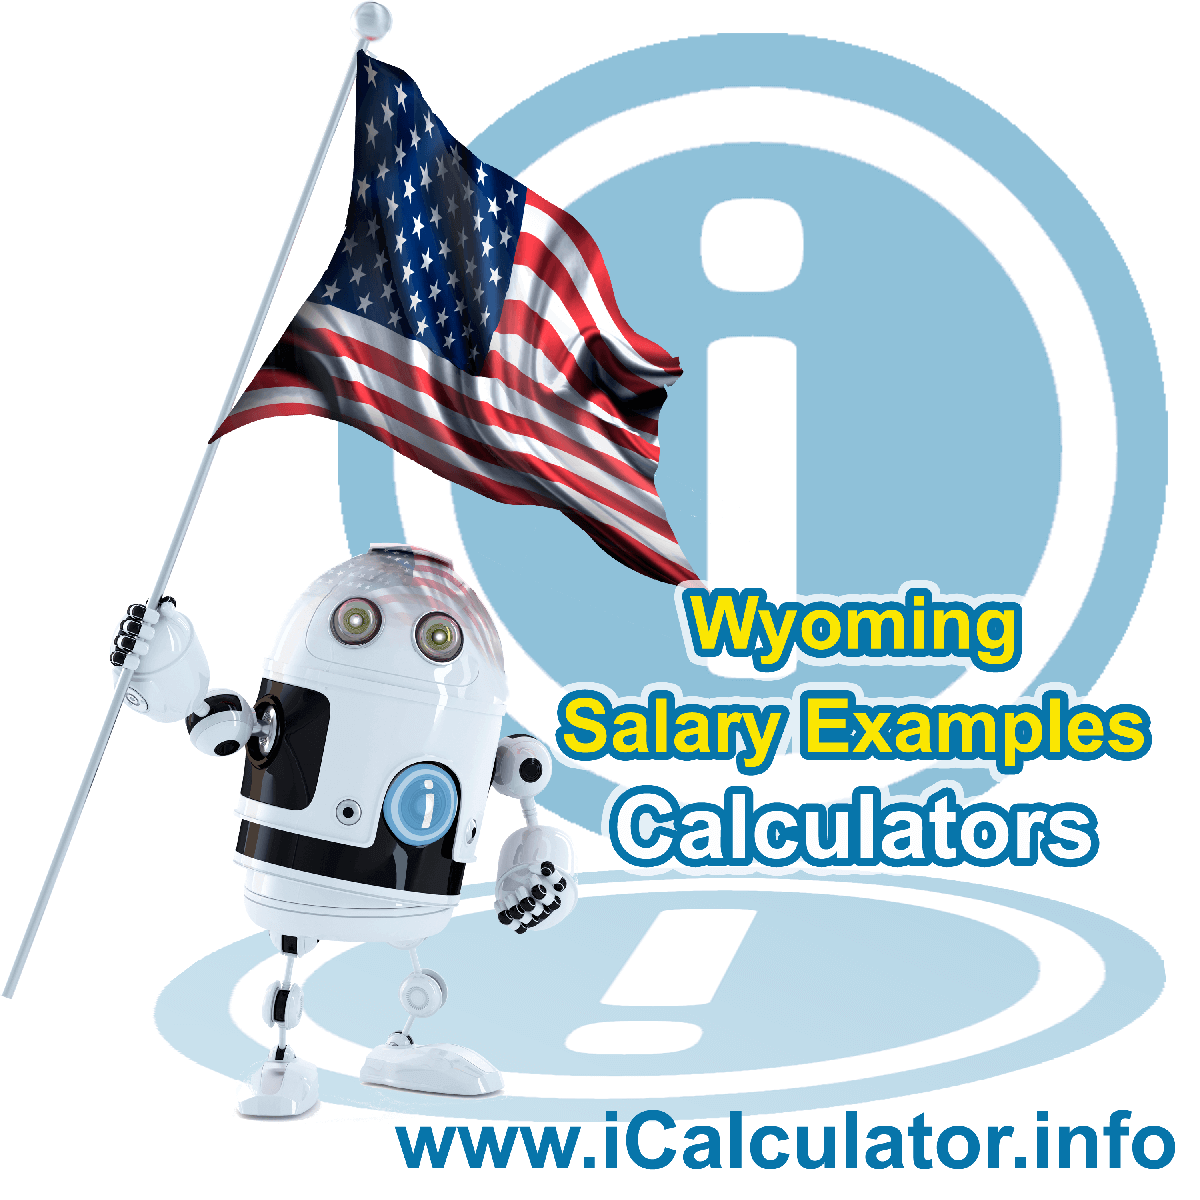 Wyoming Salary Example for $40,000.00 in 2020 | iCalculator | $40,000.00 salary example for employee and employer paying Wyoming State tincome taxes. Detailed salary after tax calculation including Wyoming State Tax, Federal State Tax, Medicare Deductions, Social Security, Capital Gains and other income tax and salary deductions complete with supporting Wyoming state tax tables